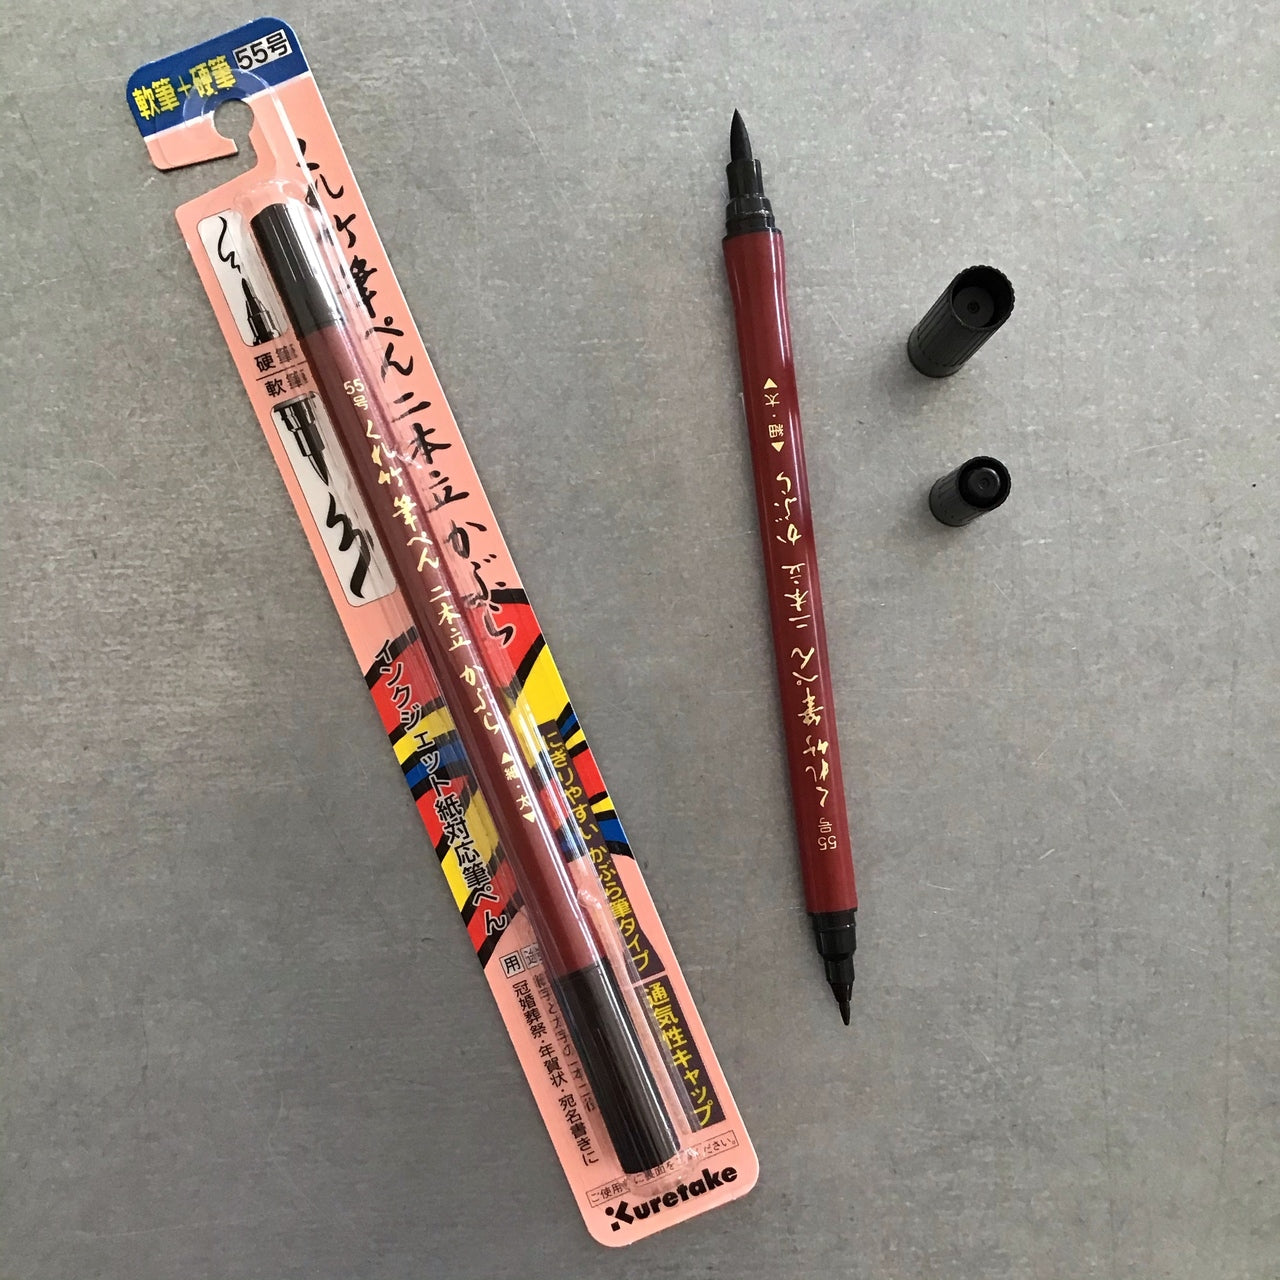 The Kuretake Fude double-sided brush pen, or Nihondate Kabura (No.55), contains a water-based dye Ink.